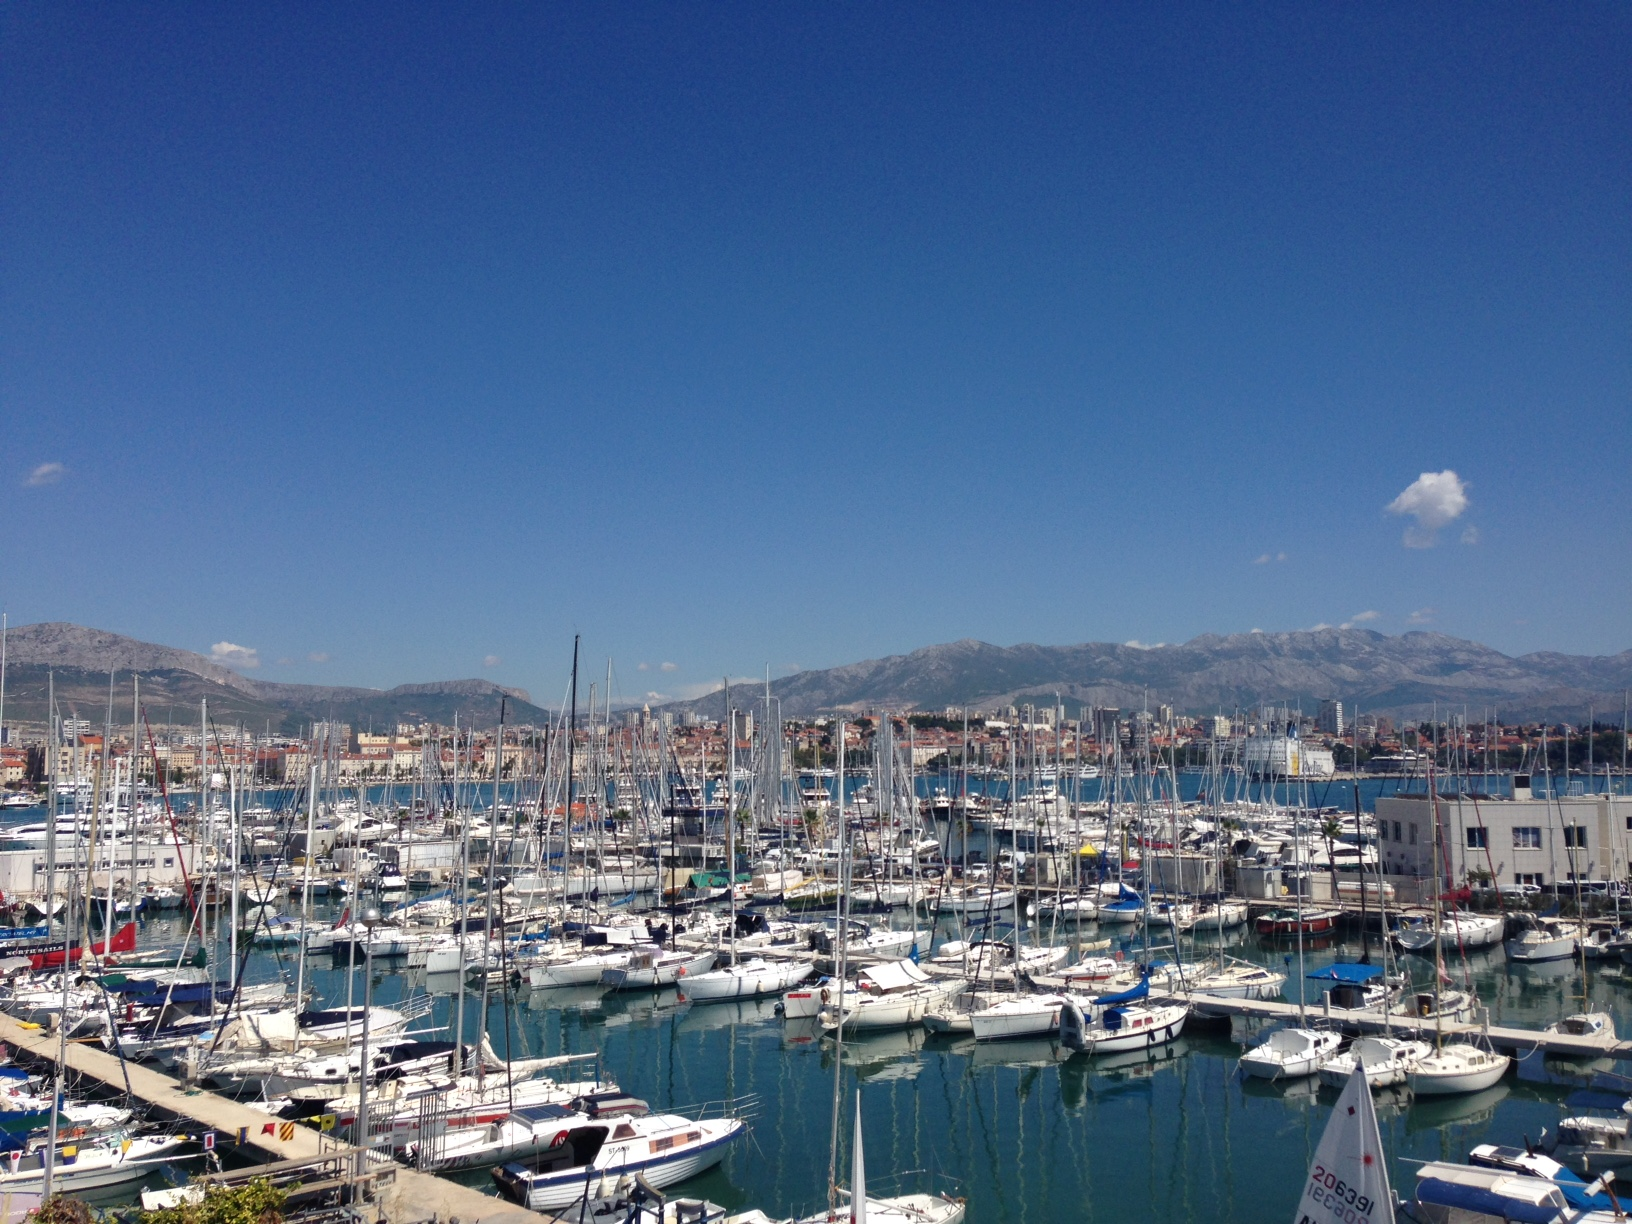 The view from the sailing club marina looking over to the city of Split and the mountains in the distance.